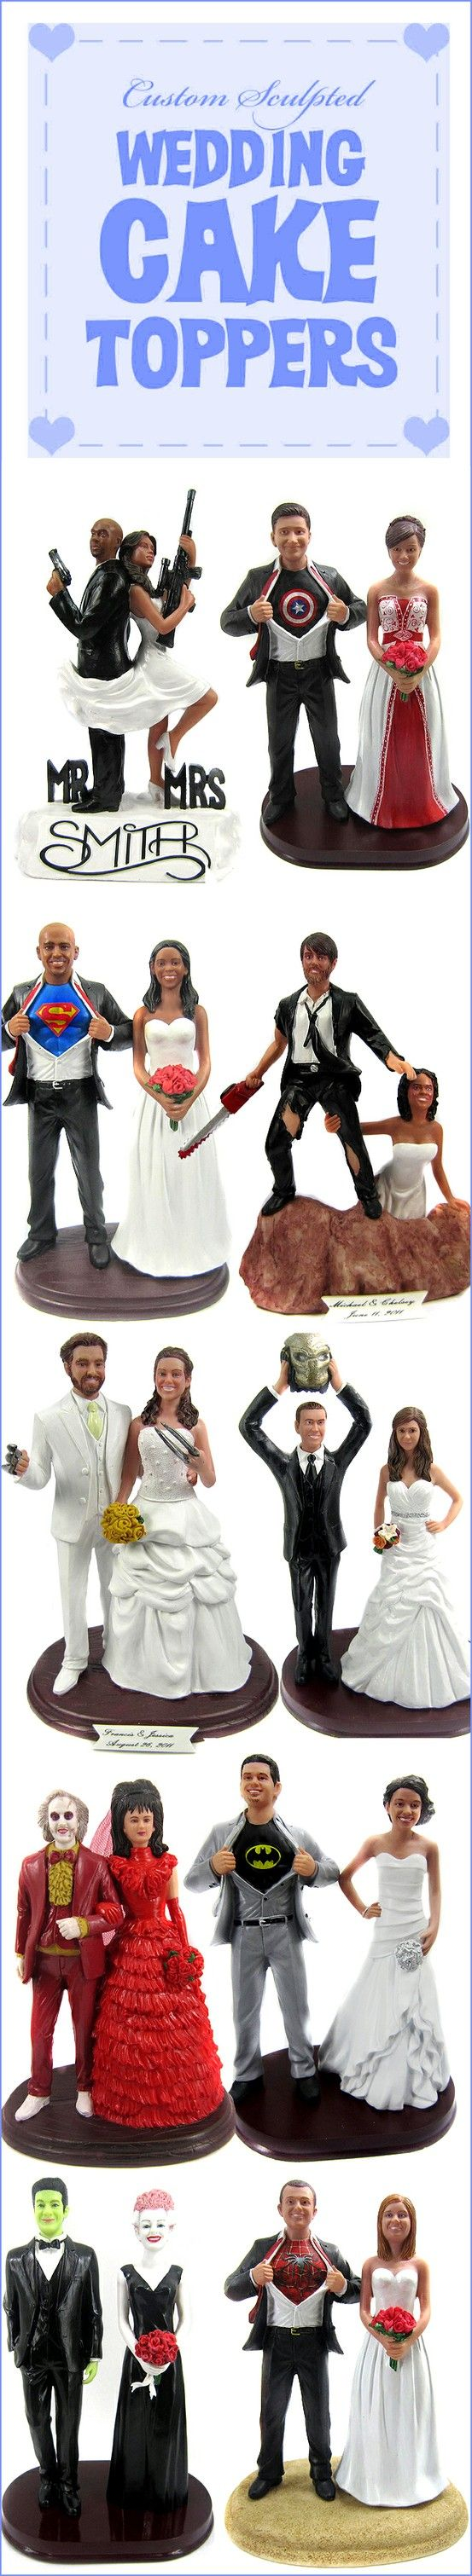 Custom wedding cake toppers are sculpted from your photos. not big on wedding stuff but these are awesome.